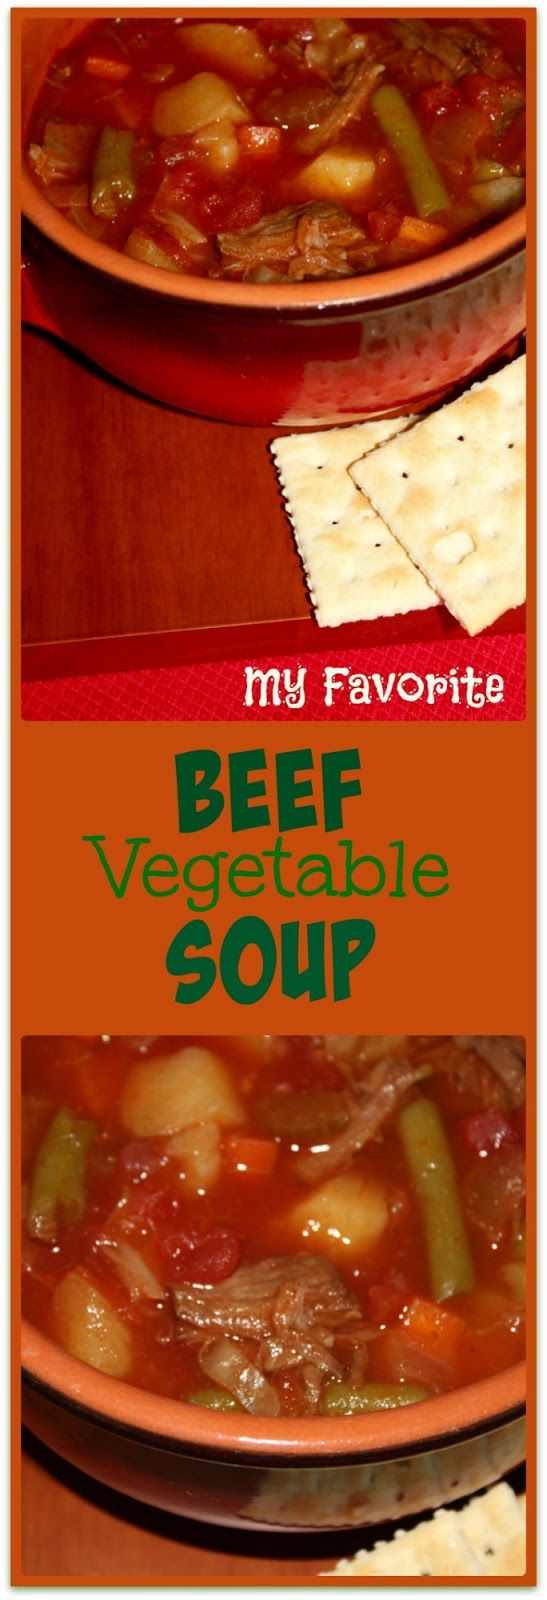 As much as I love pumpkin, as in last month's Pumpkin Palooza recipes, I think I love soups in the Fall and Winter even more. Since...